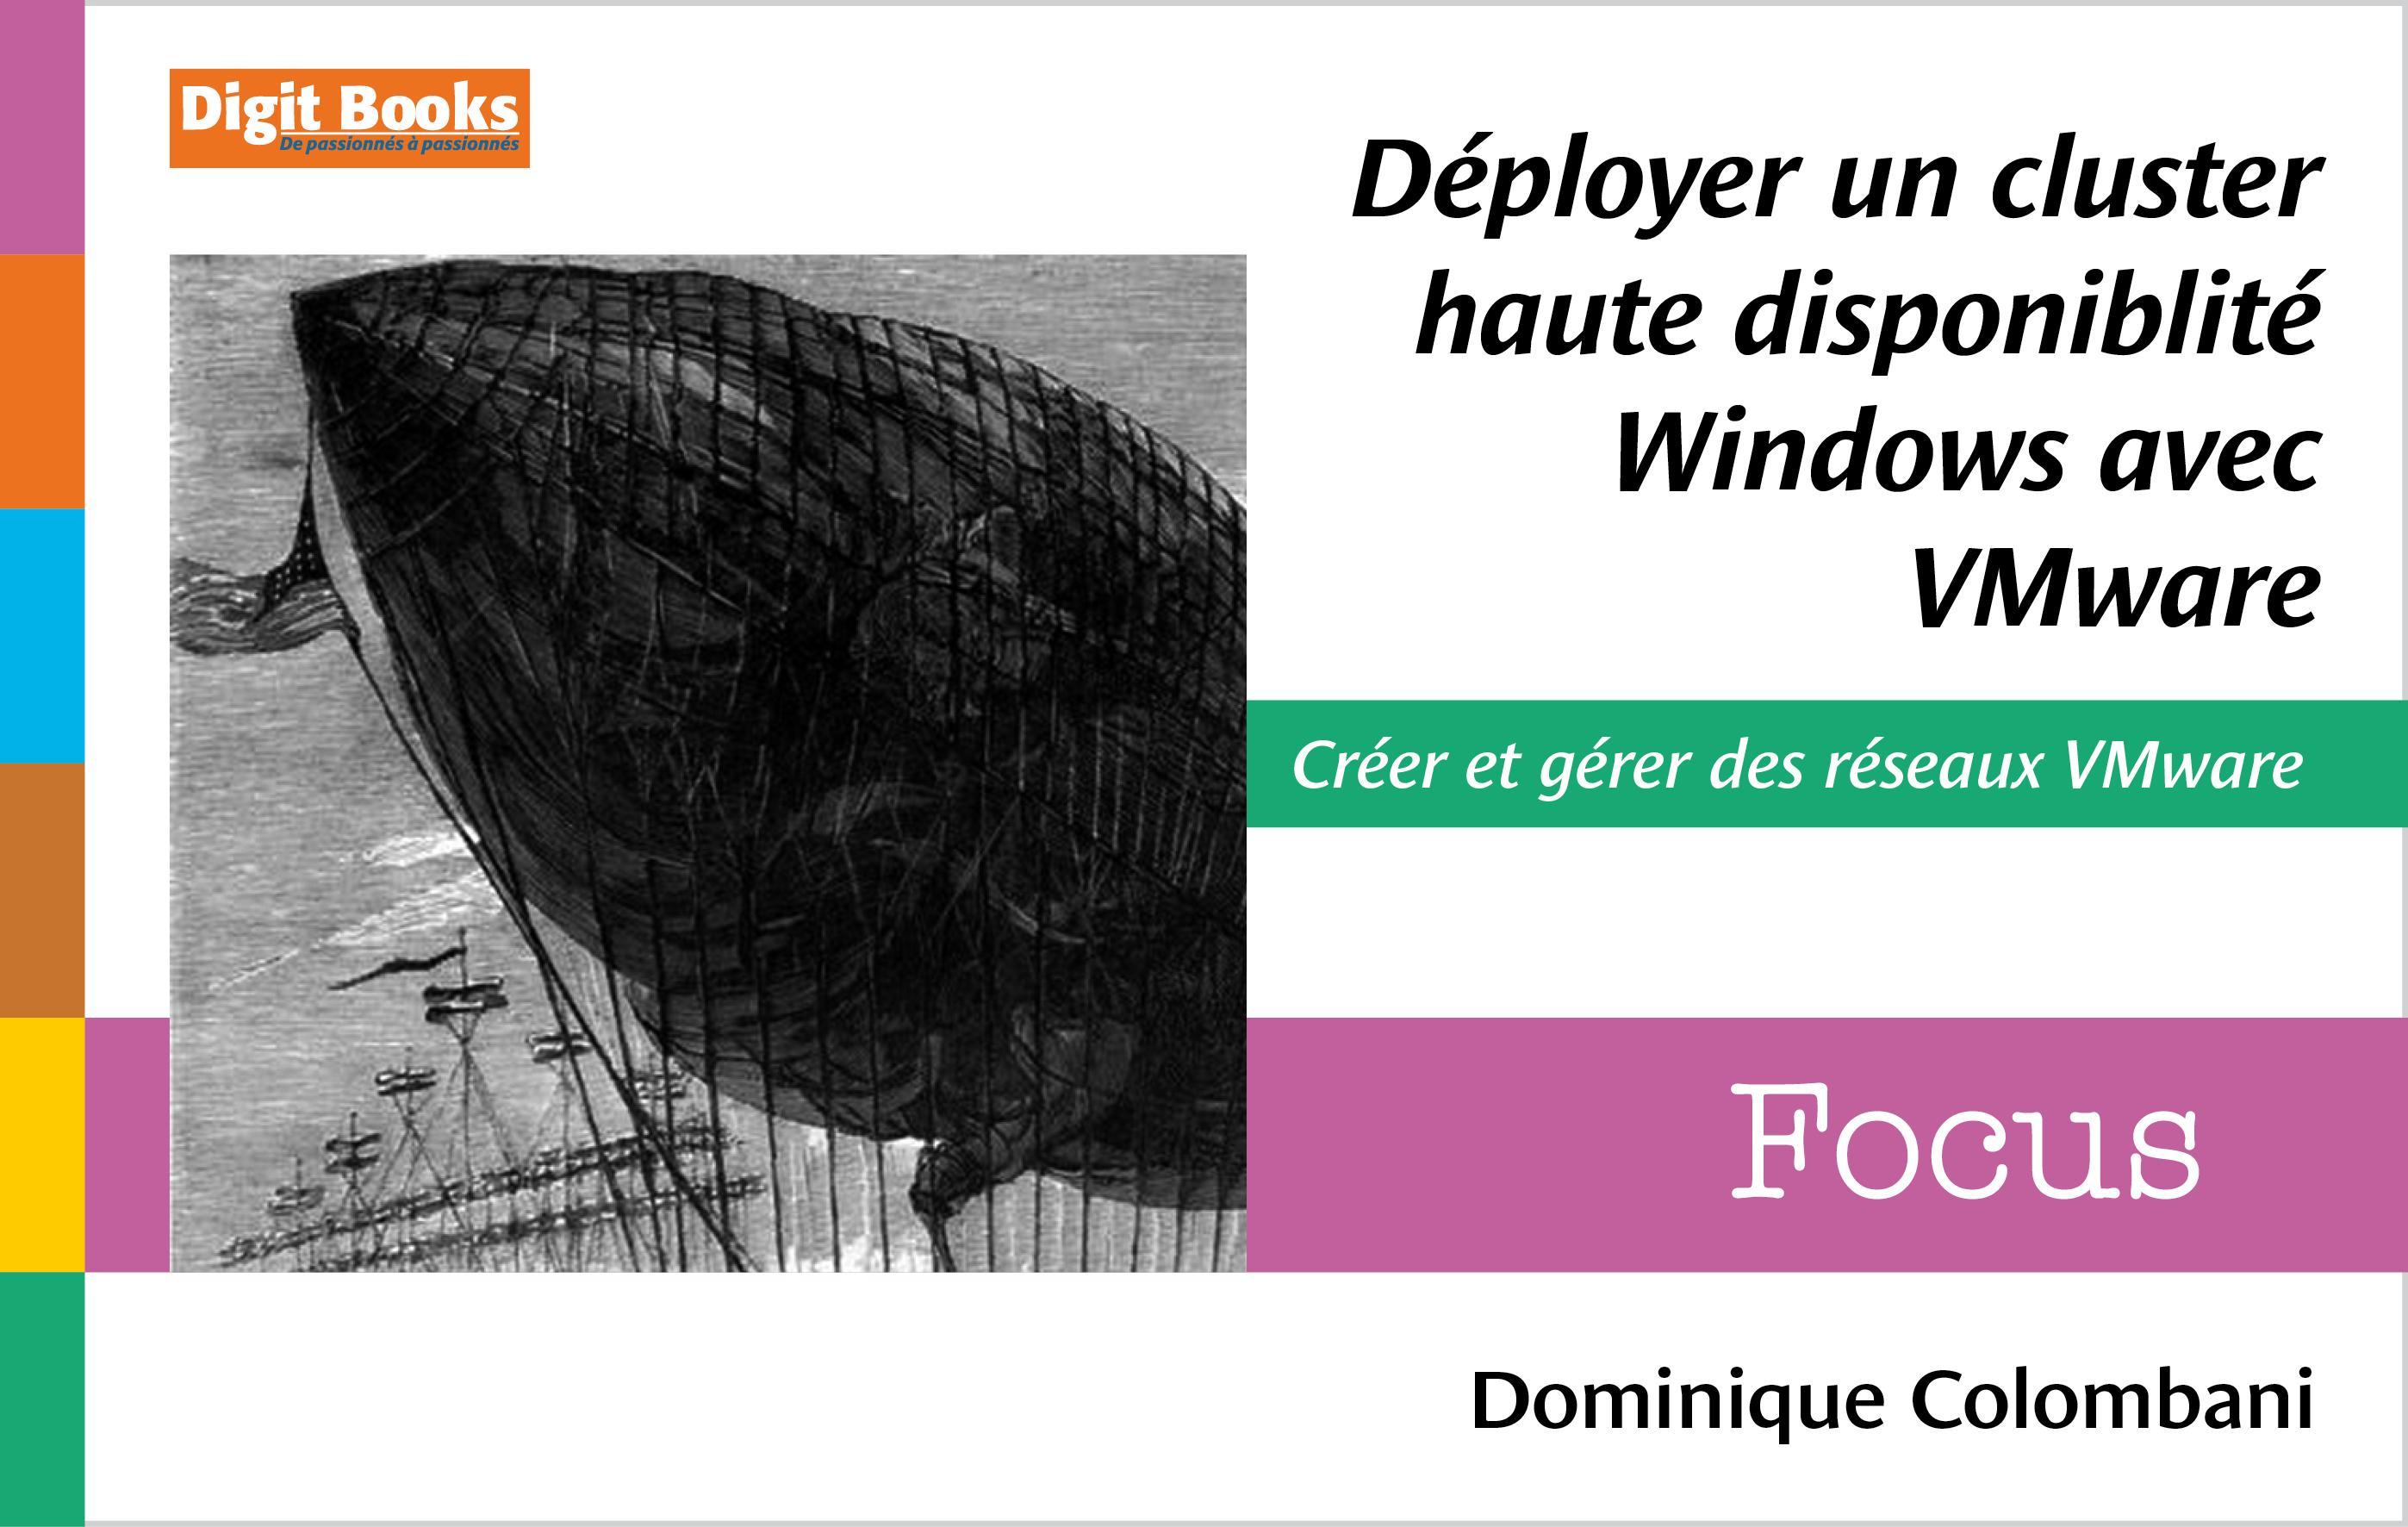 Déployer un cluster haute disponibilité Windows avec VMware